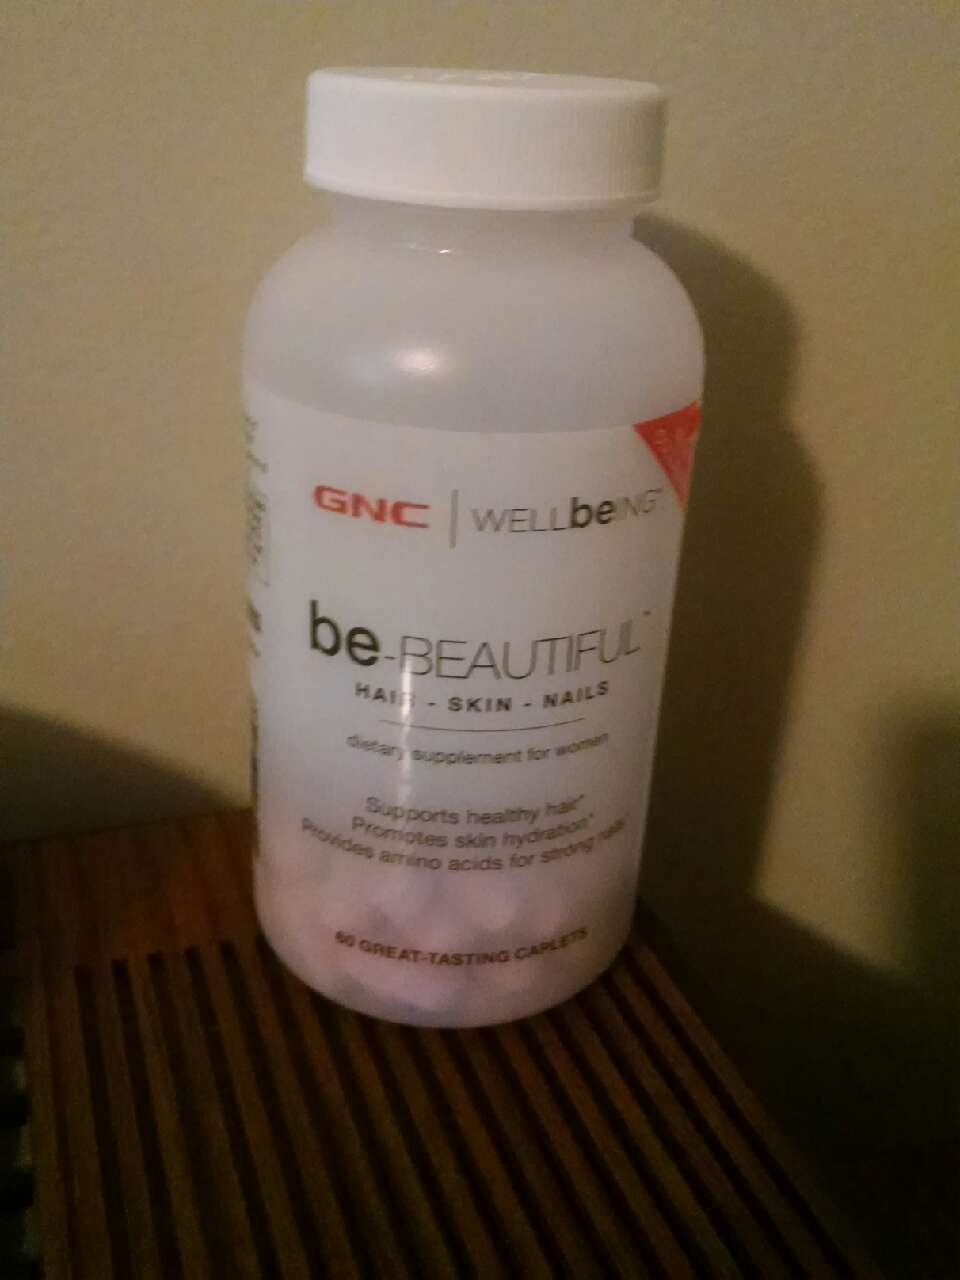 The second thing I did was start taking these gnc vitamins, they don't smell or taste the greatest but they have definitely helped me grow my hair faster and healthier.